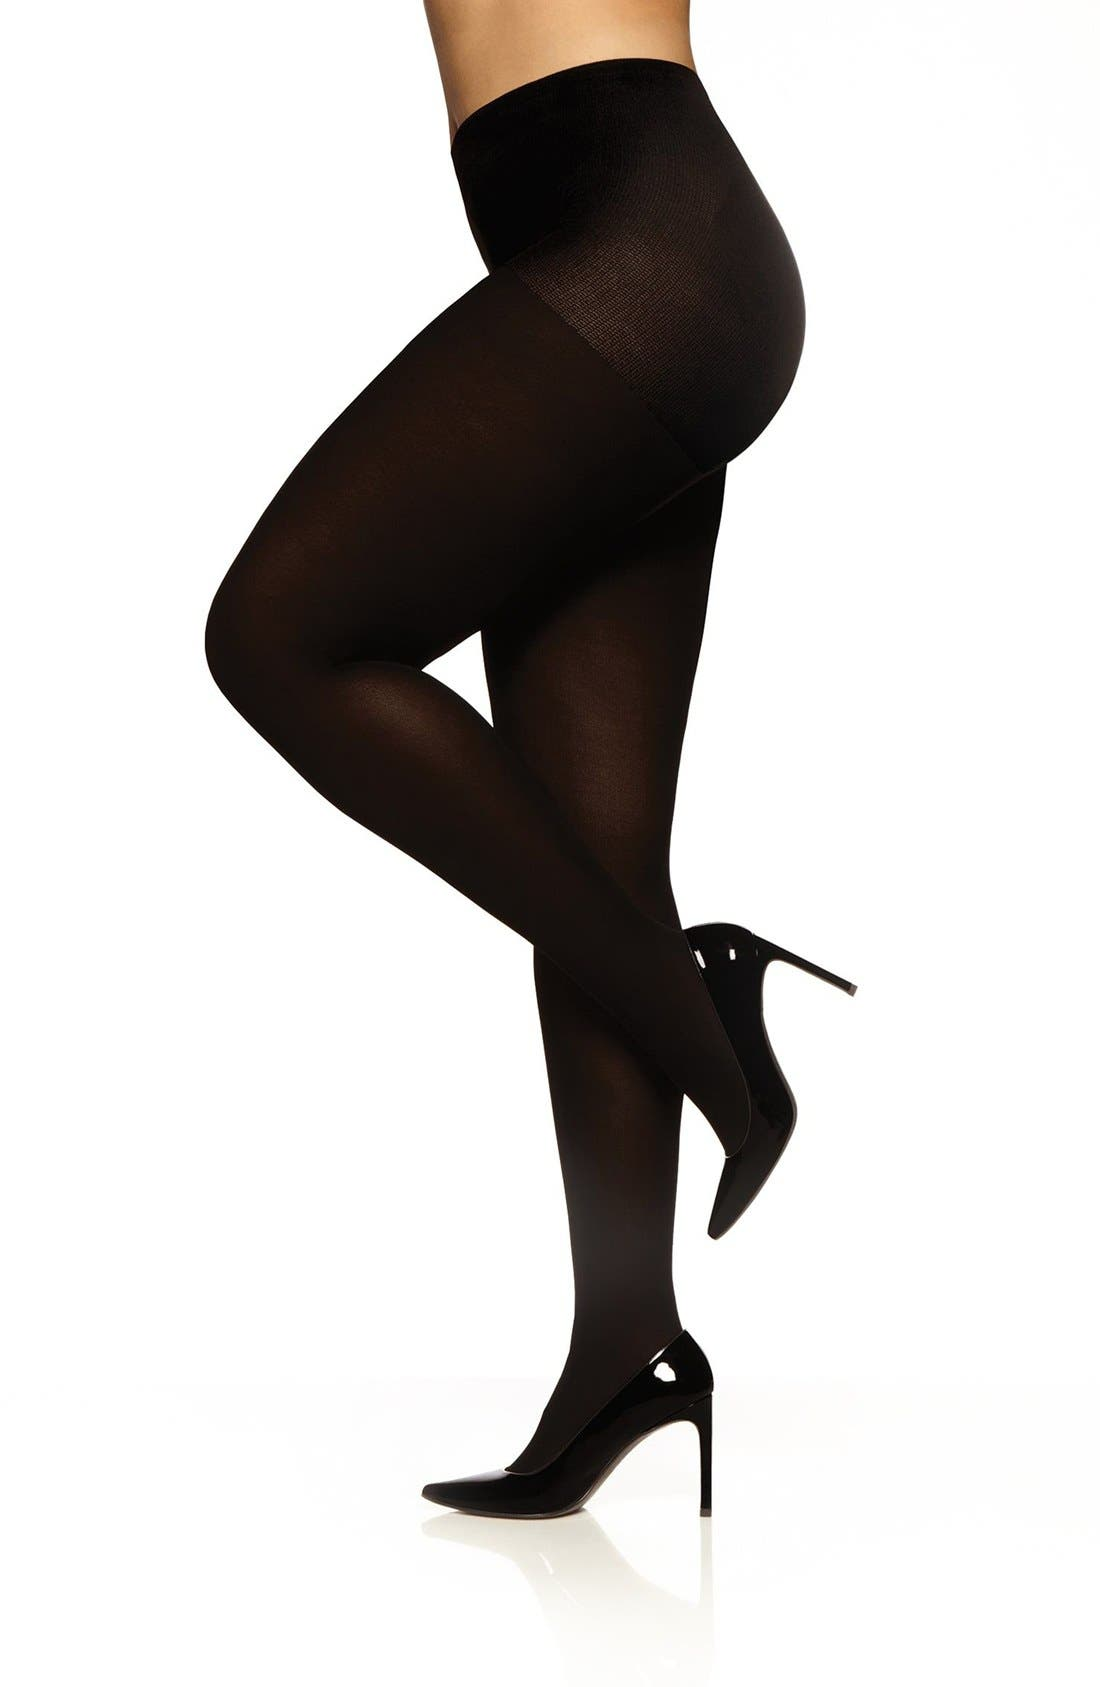 Easy-On 70 Denier Tights,                         Main,                         color, Black